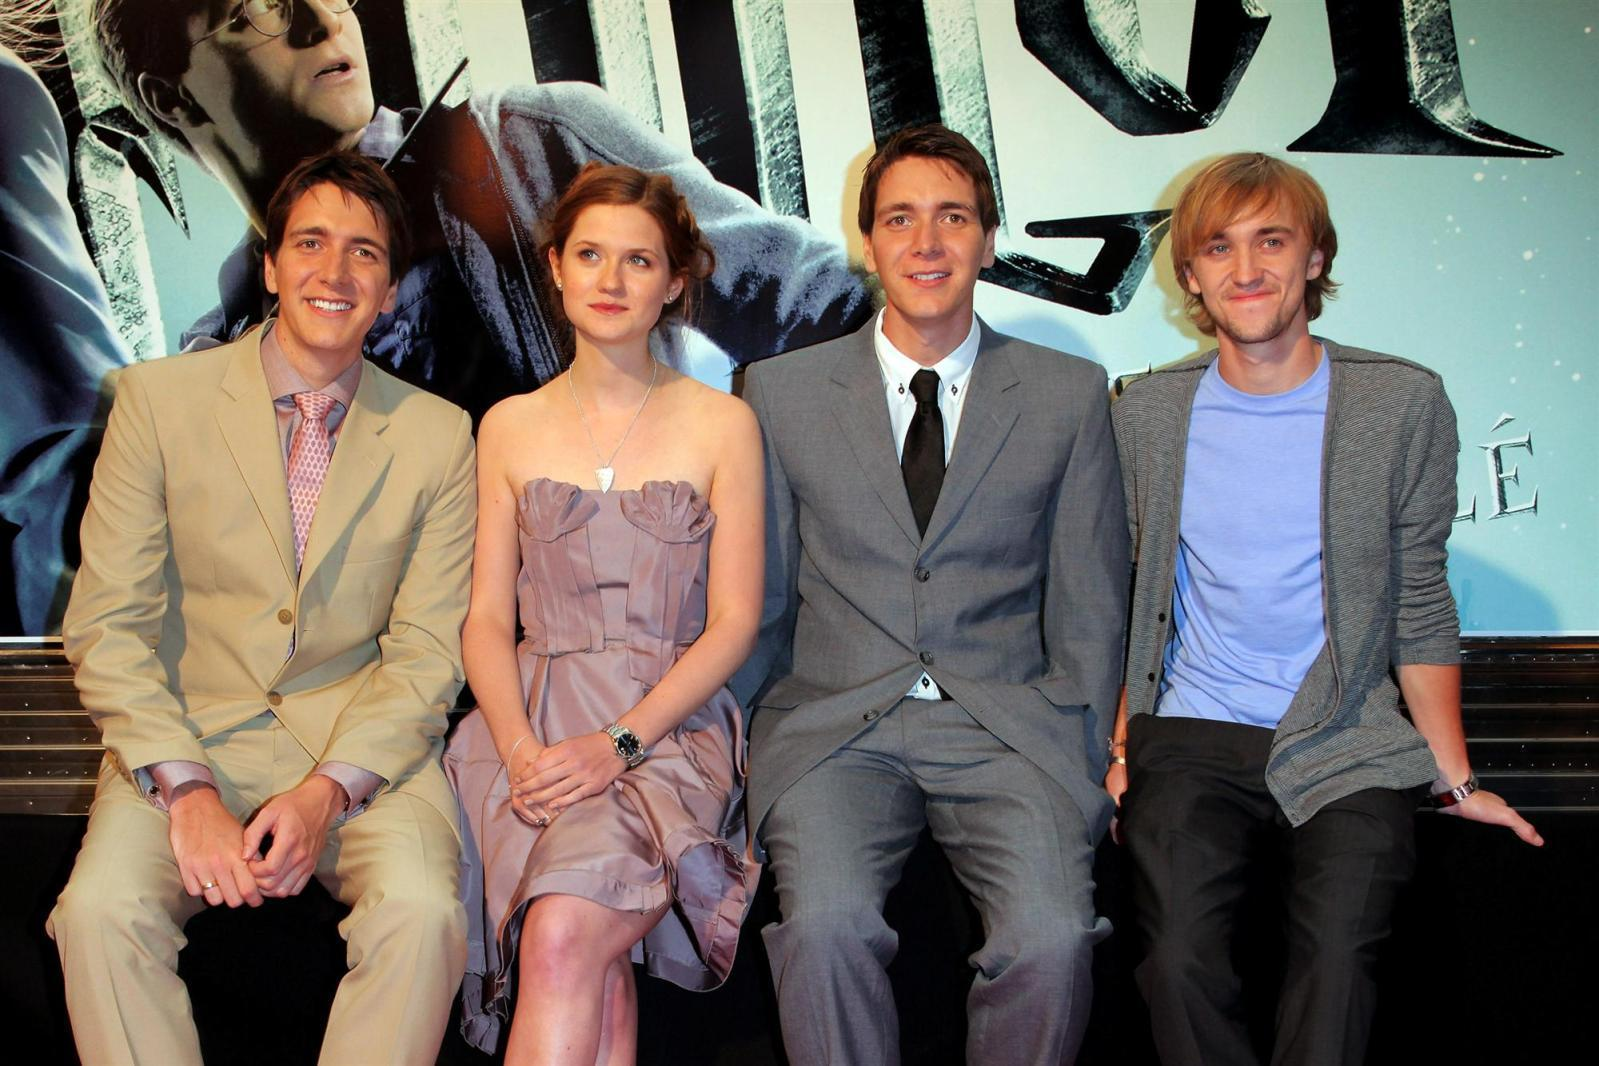 hp halfblood prince tour france - Oliver and James Phelps Photo ...